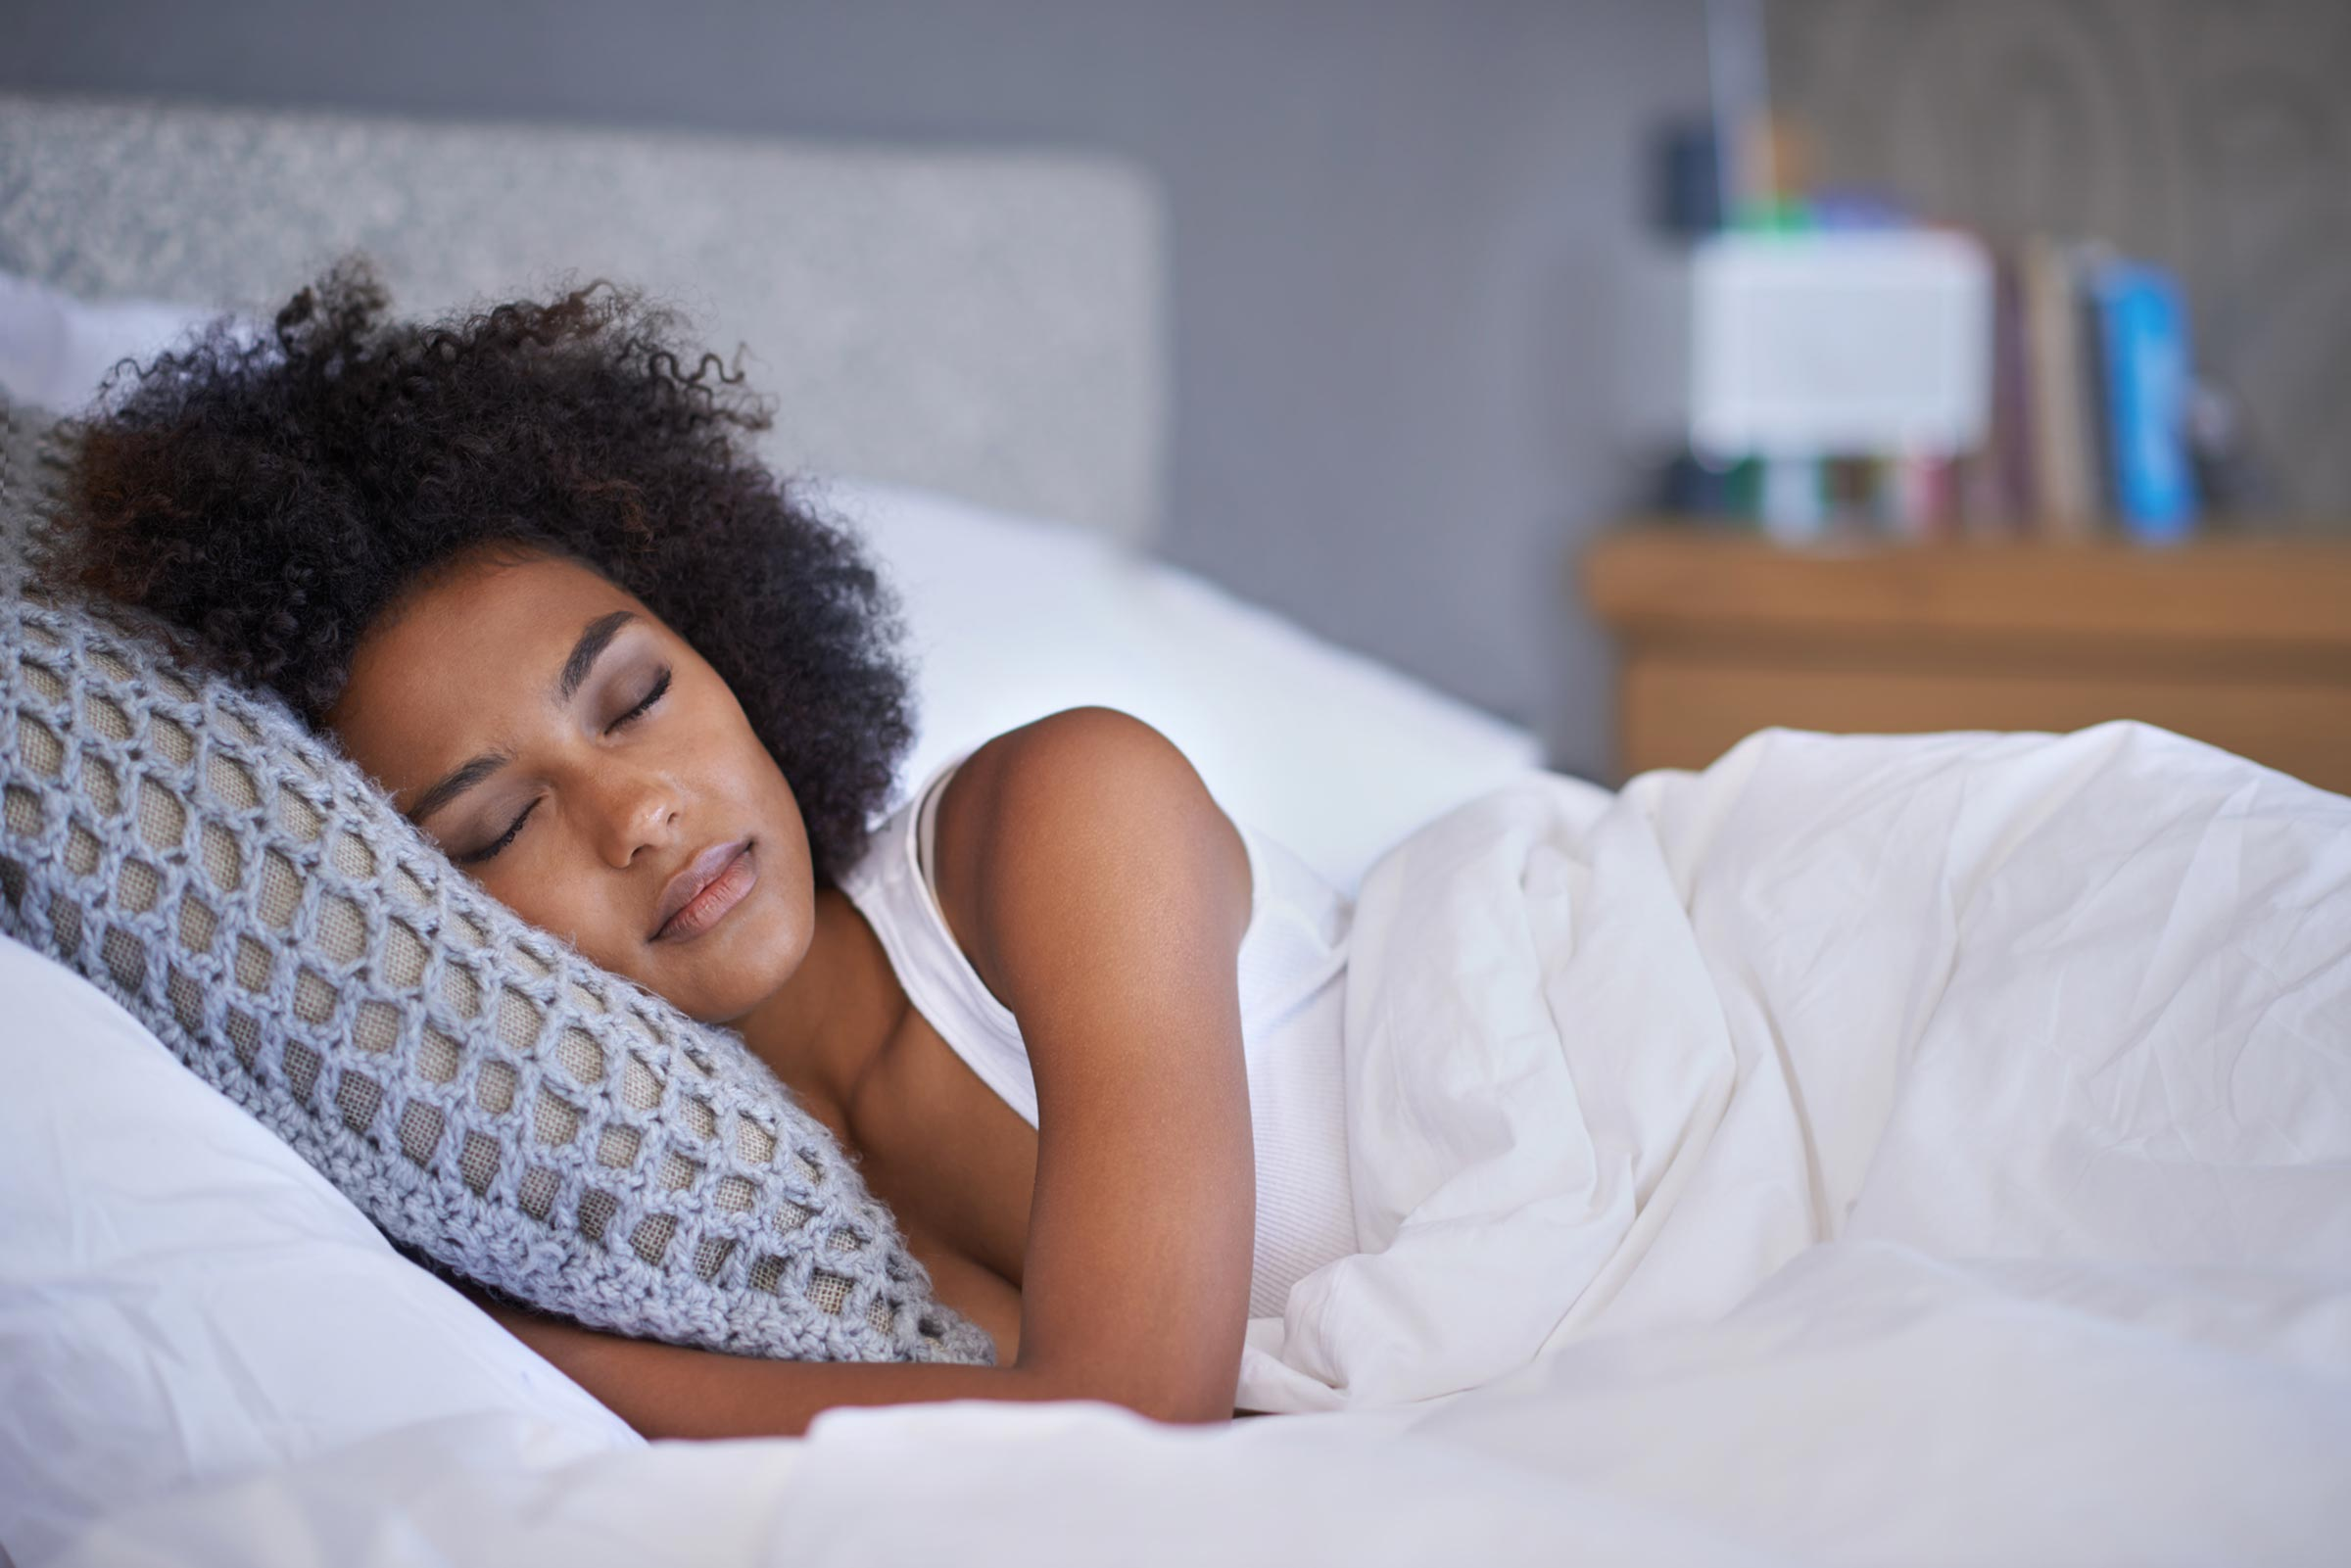 How adjustments of Positions Could Be the Secret to a Better Night's Sleep?